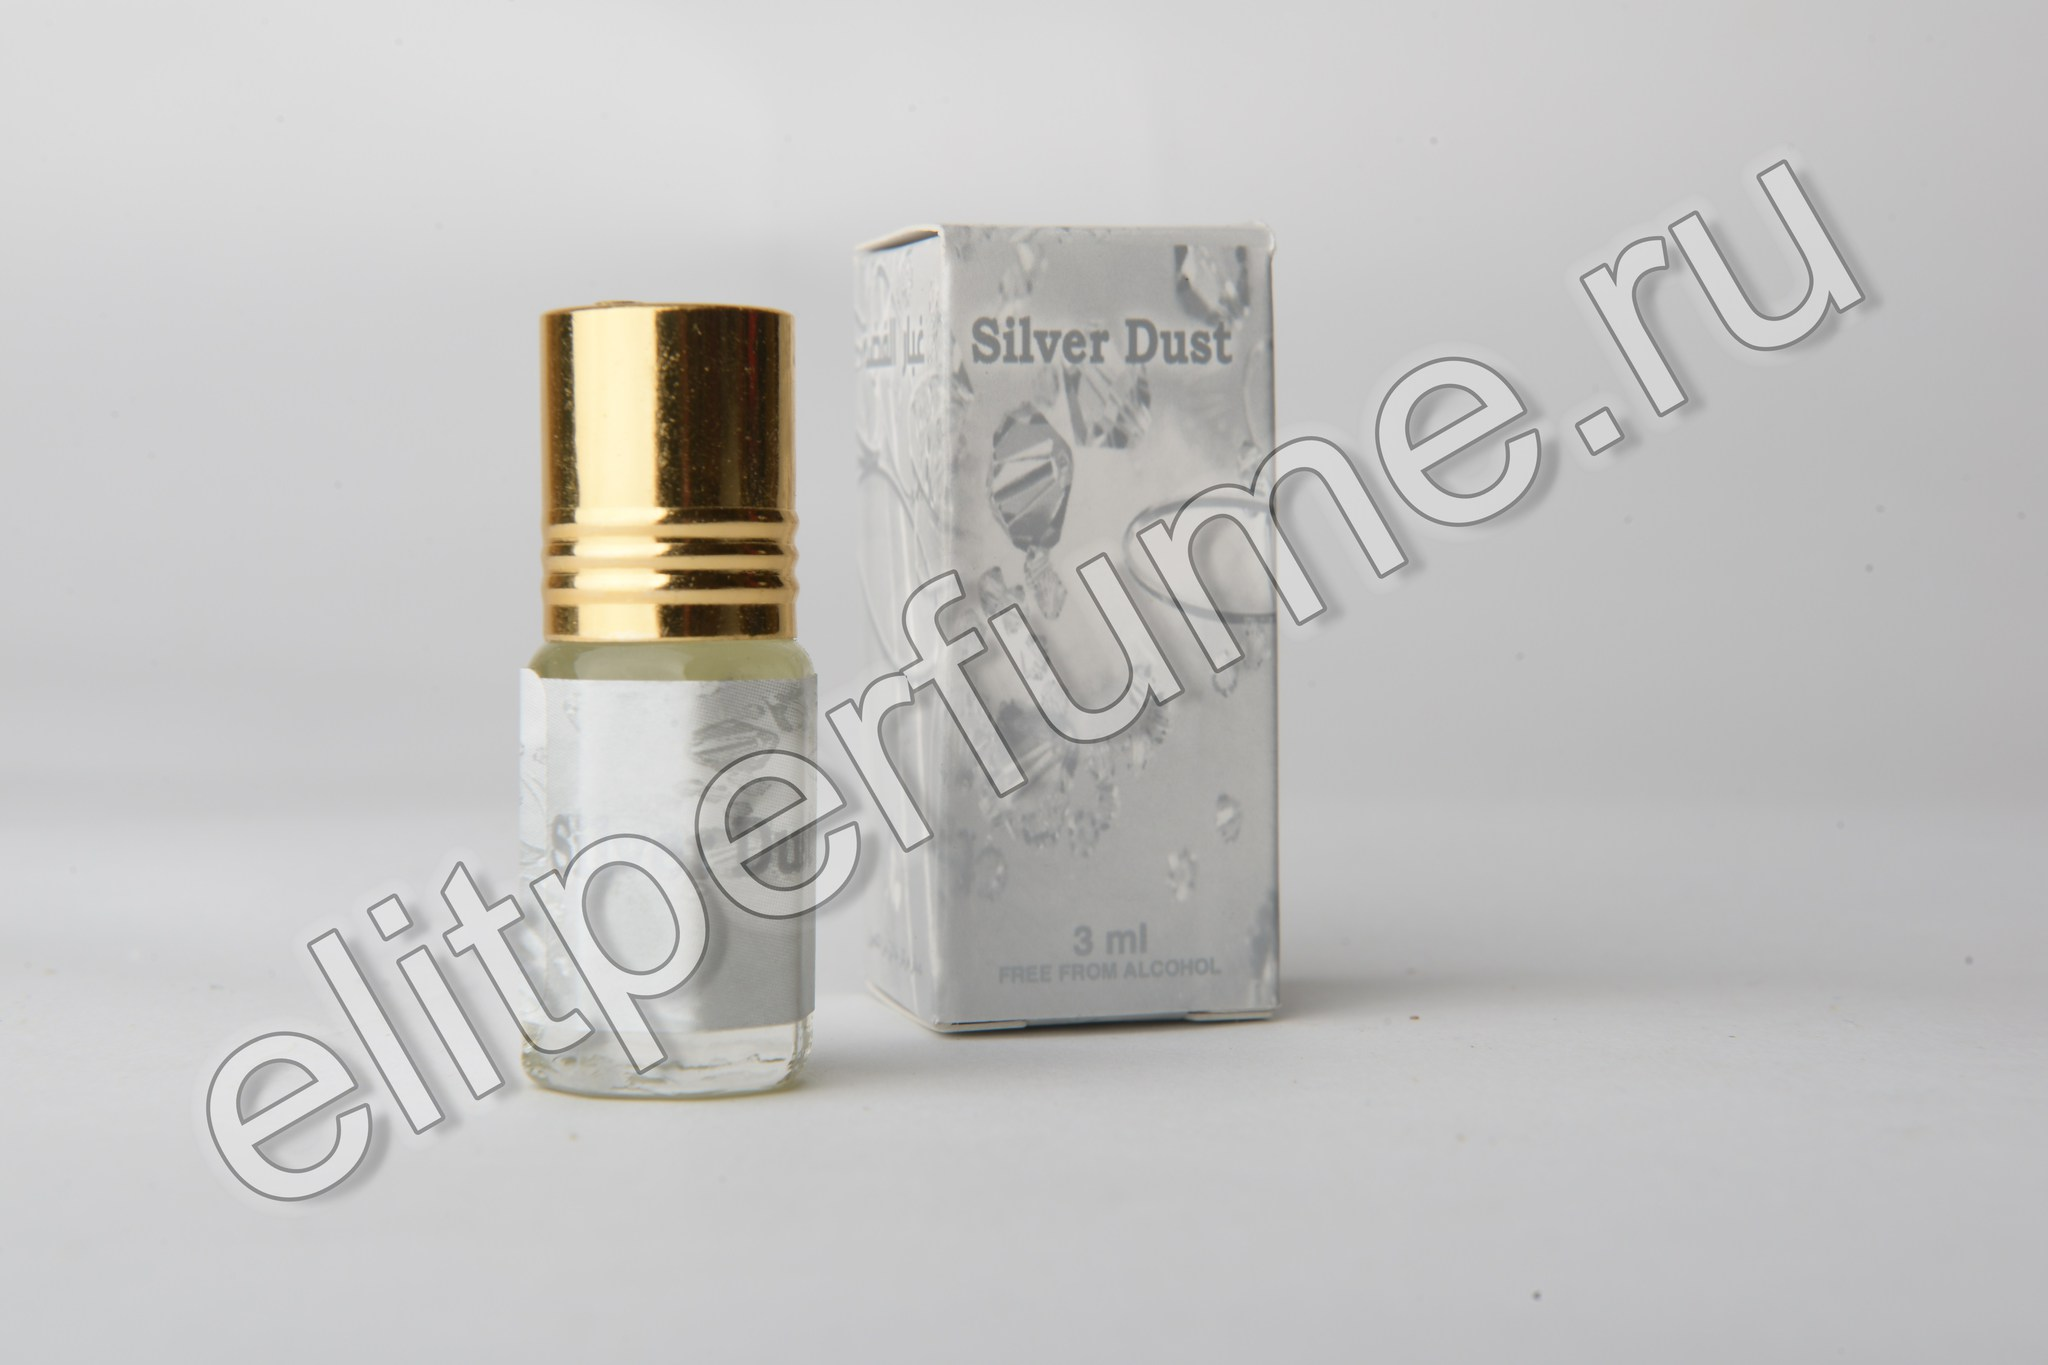 Silver Dust 3 мл арабские масляные духи от Захра Zahra Perfumes